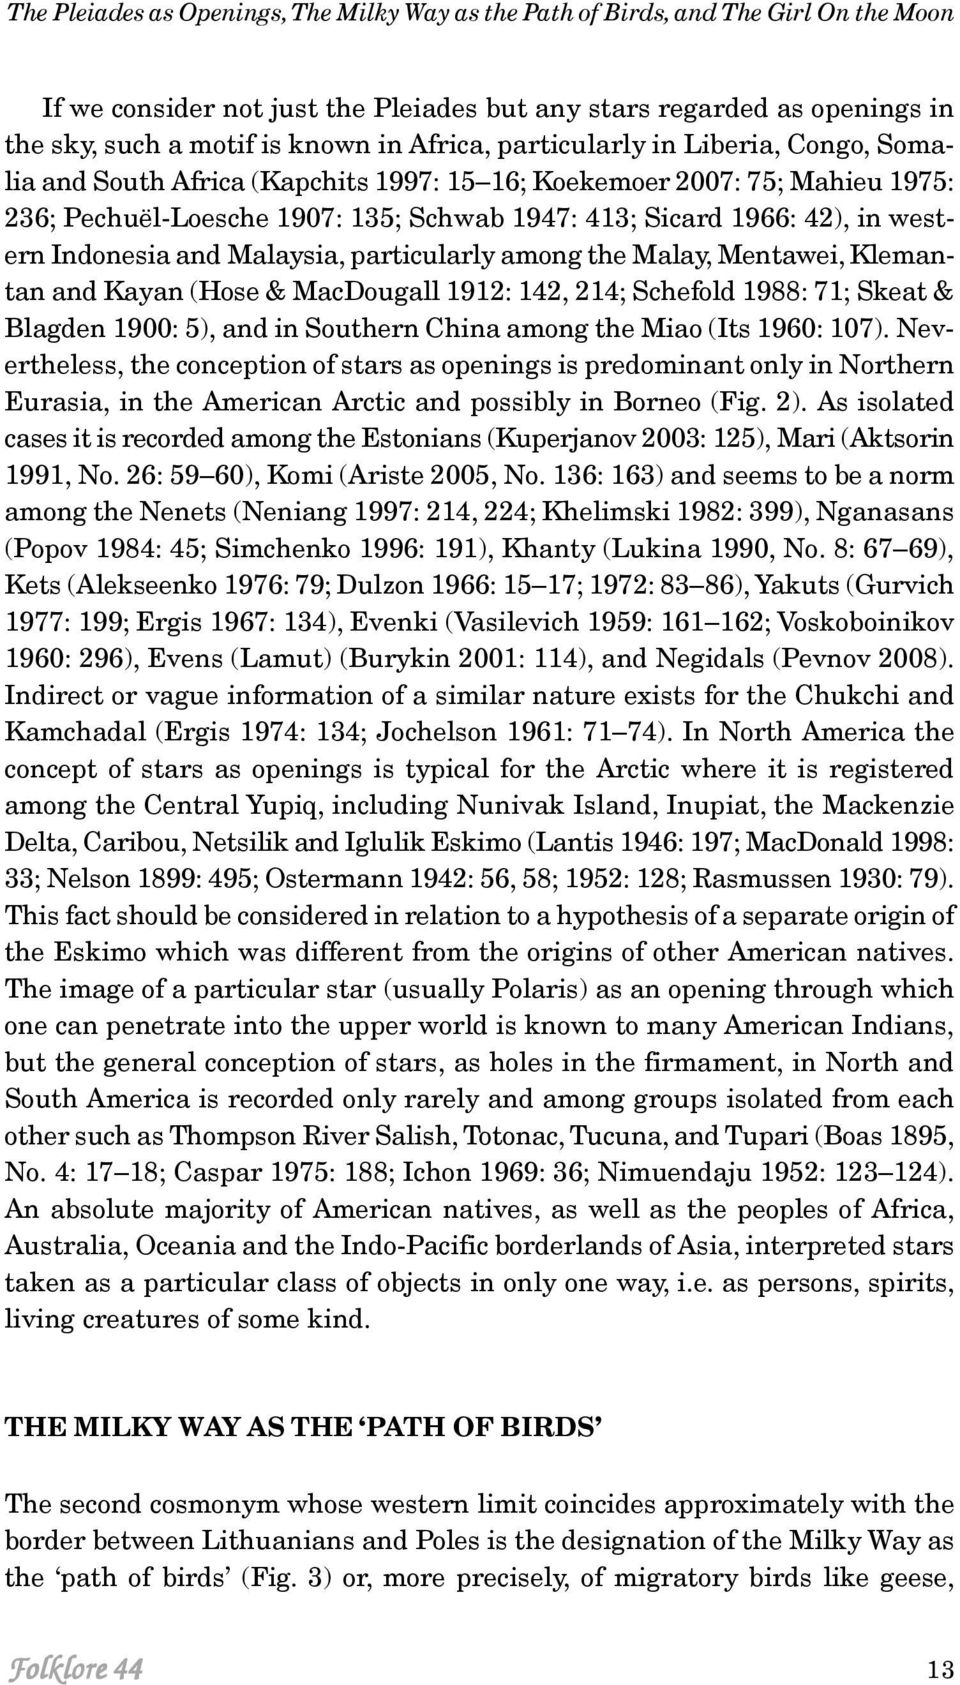 Indonesia and Malaysia, particularly among the Malay, Mentawei, Klemantan and Kayan (Hose & MacDougall 1912: 142, 214; Schefold 1988: 71; Skeat & Blagden 1900: 5), and in Southern China among the